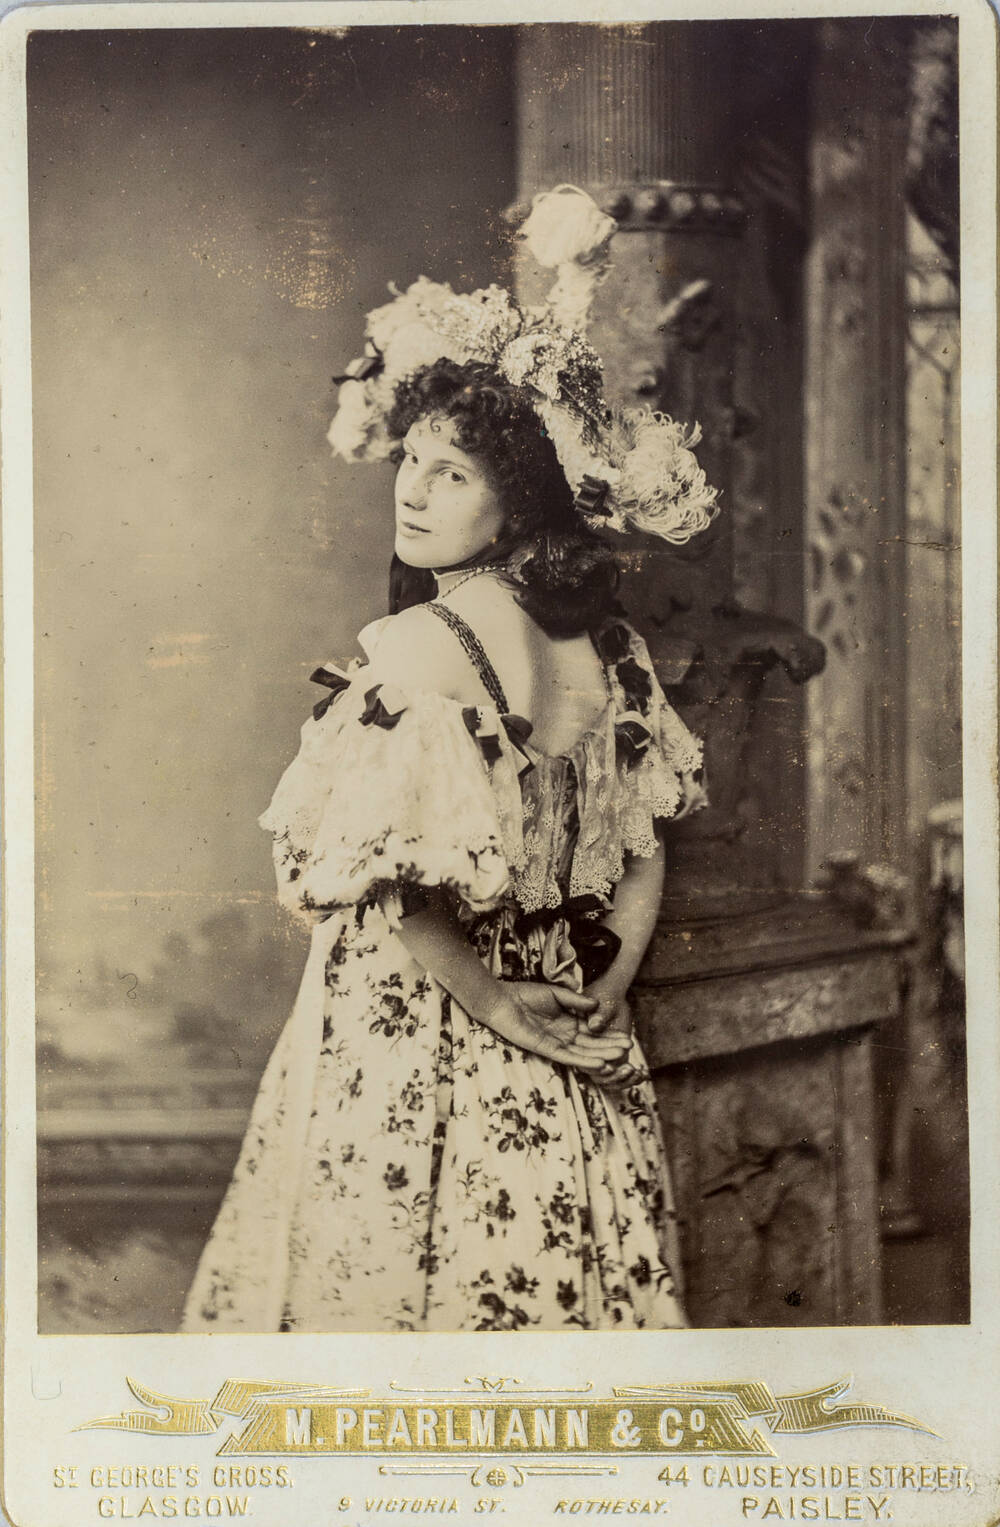 A black and white photo of a woman wearing a flowery hat and dress with her hands behind her back, looking over her shoulder.